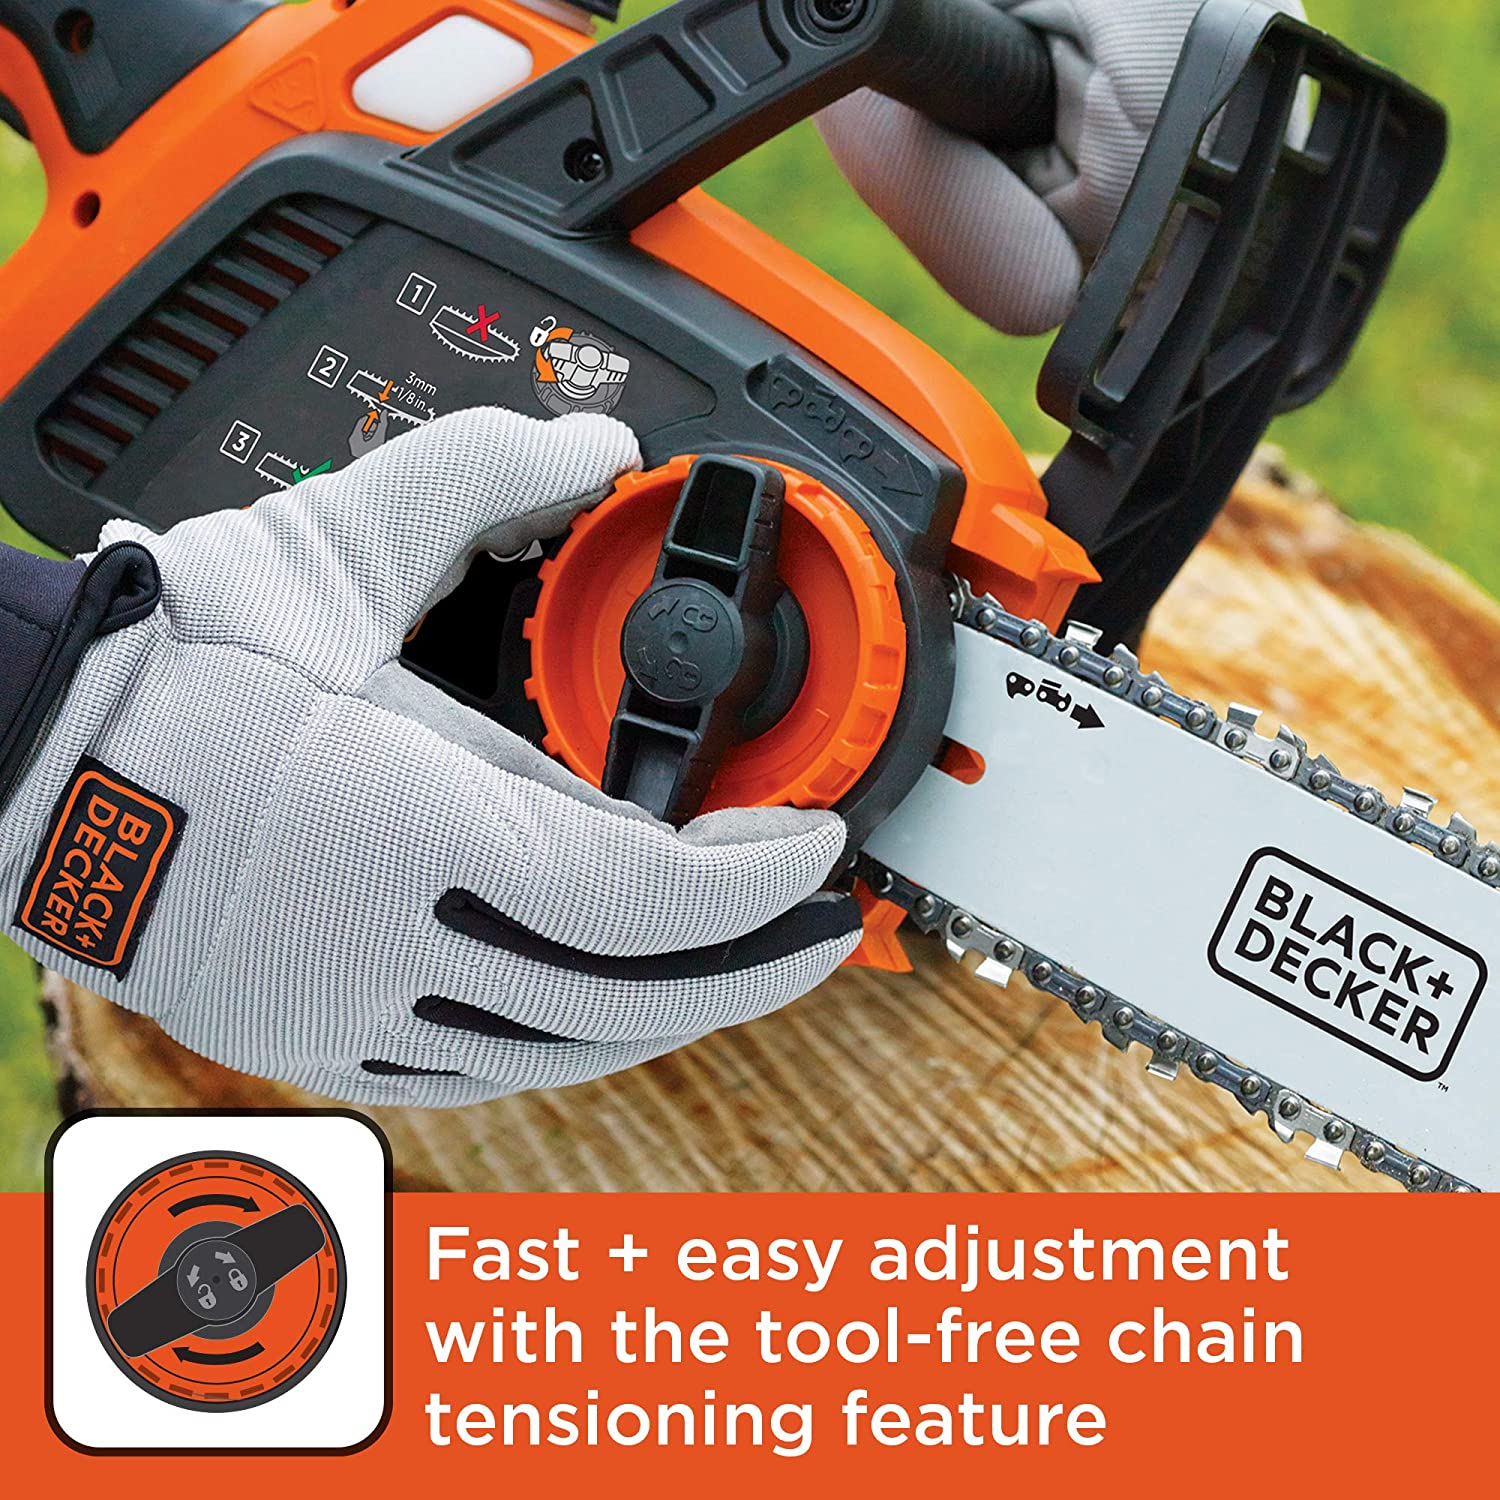 BLACK+DECKER LCS1020 Chainsaws product image 5